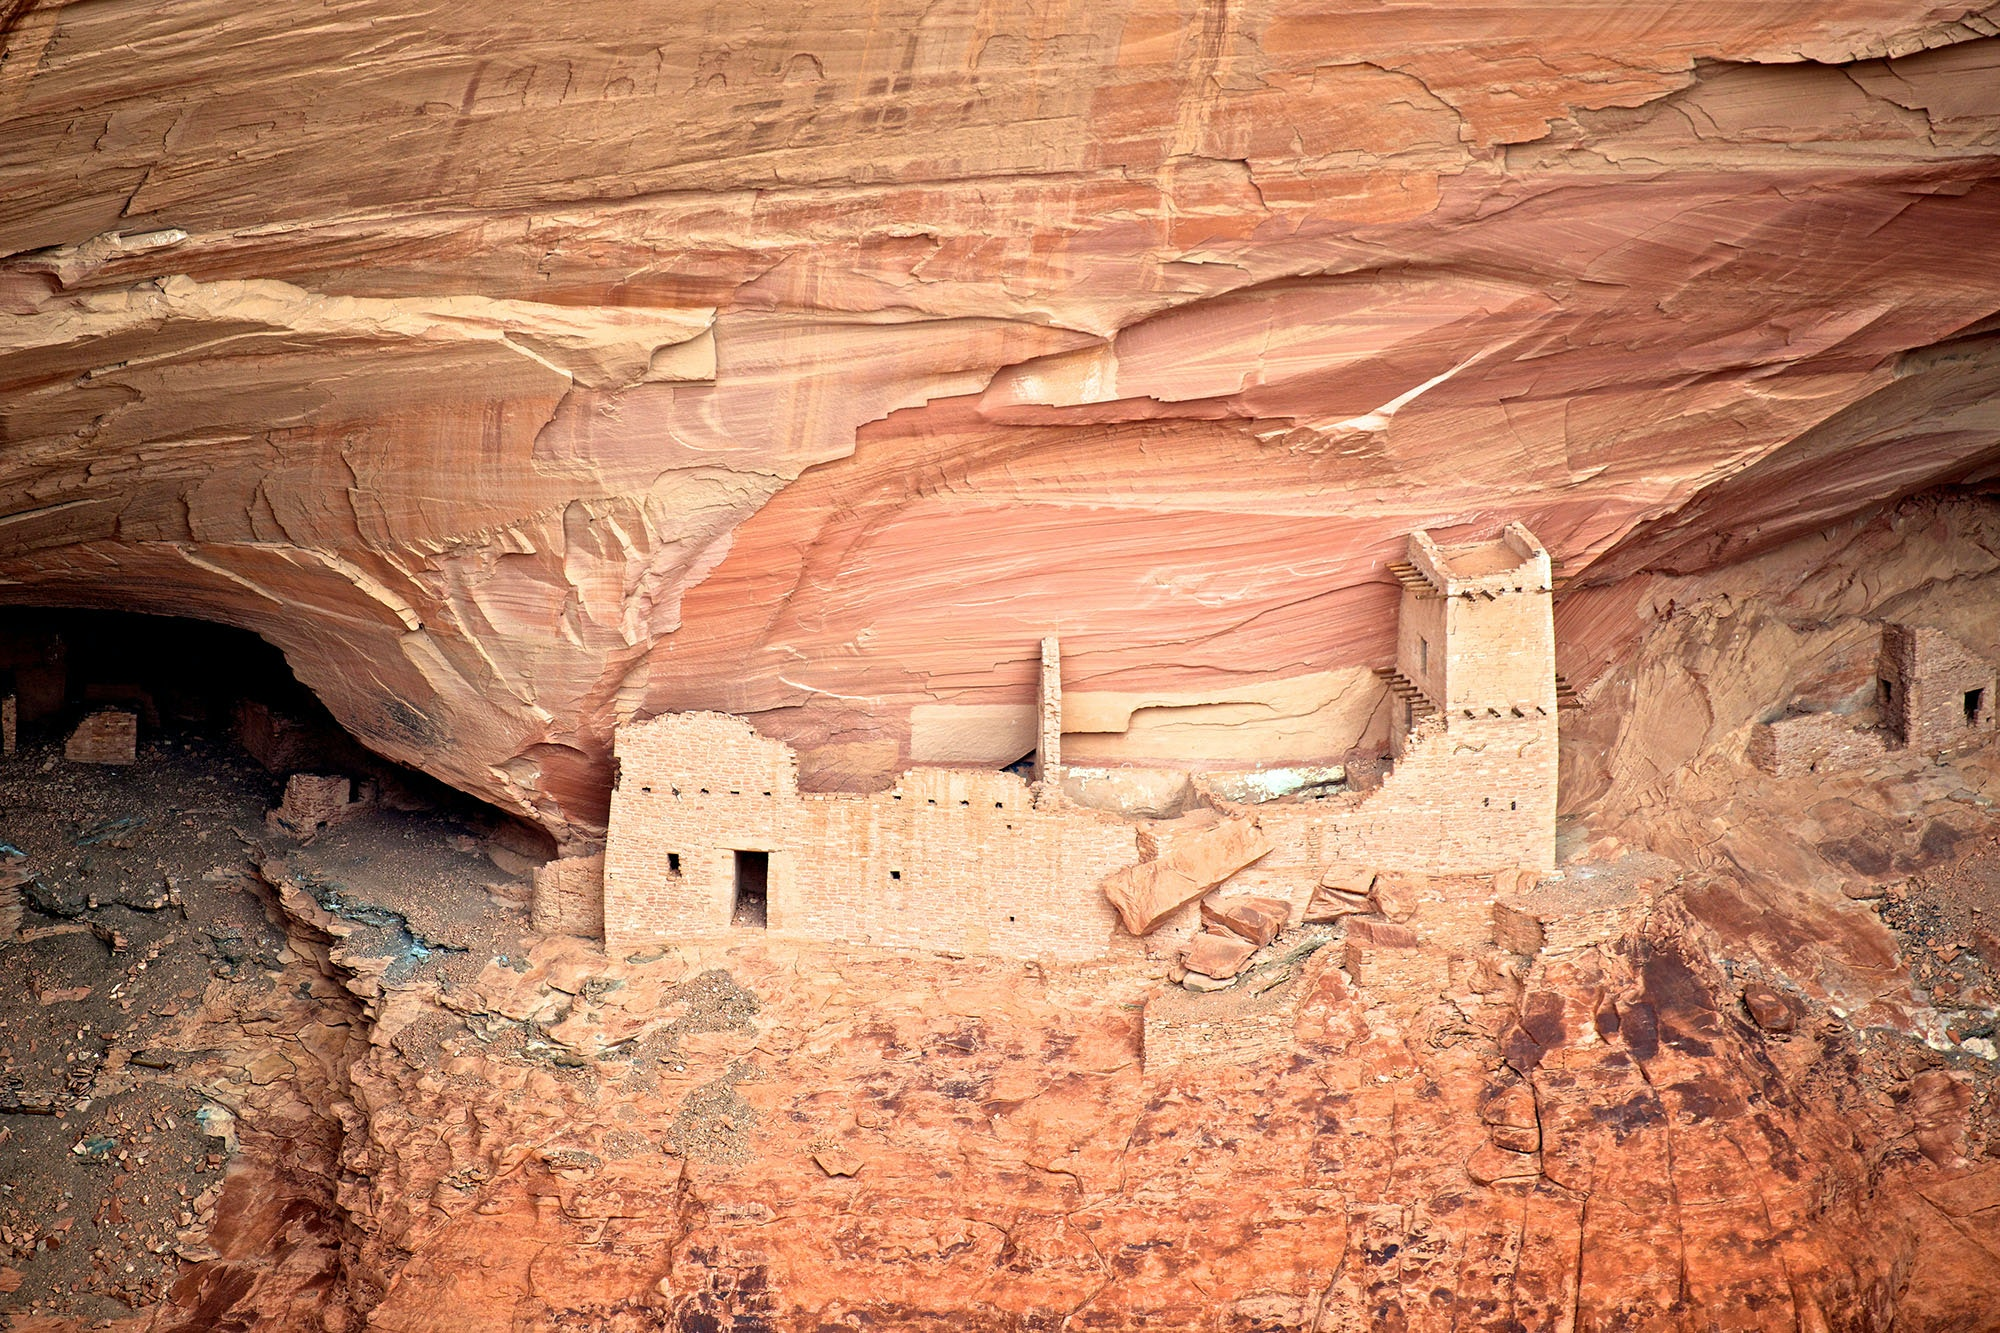 Mummy Cave is the largest ancient Puebloan village preserved in Canyon de Chelly, and is carved into the cliffside.